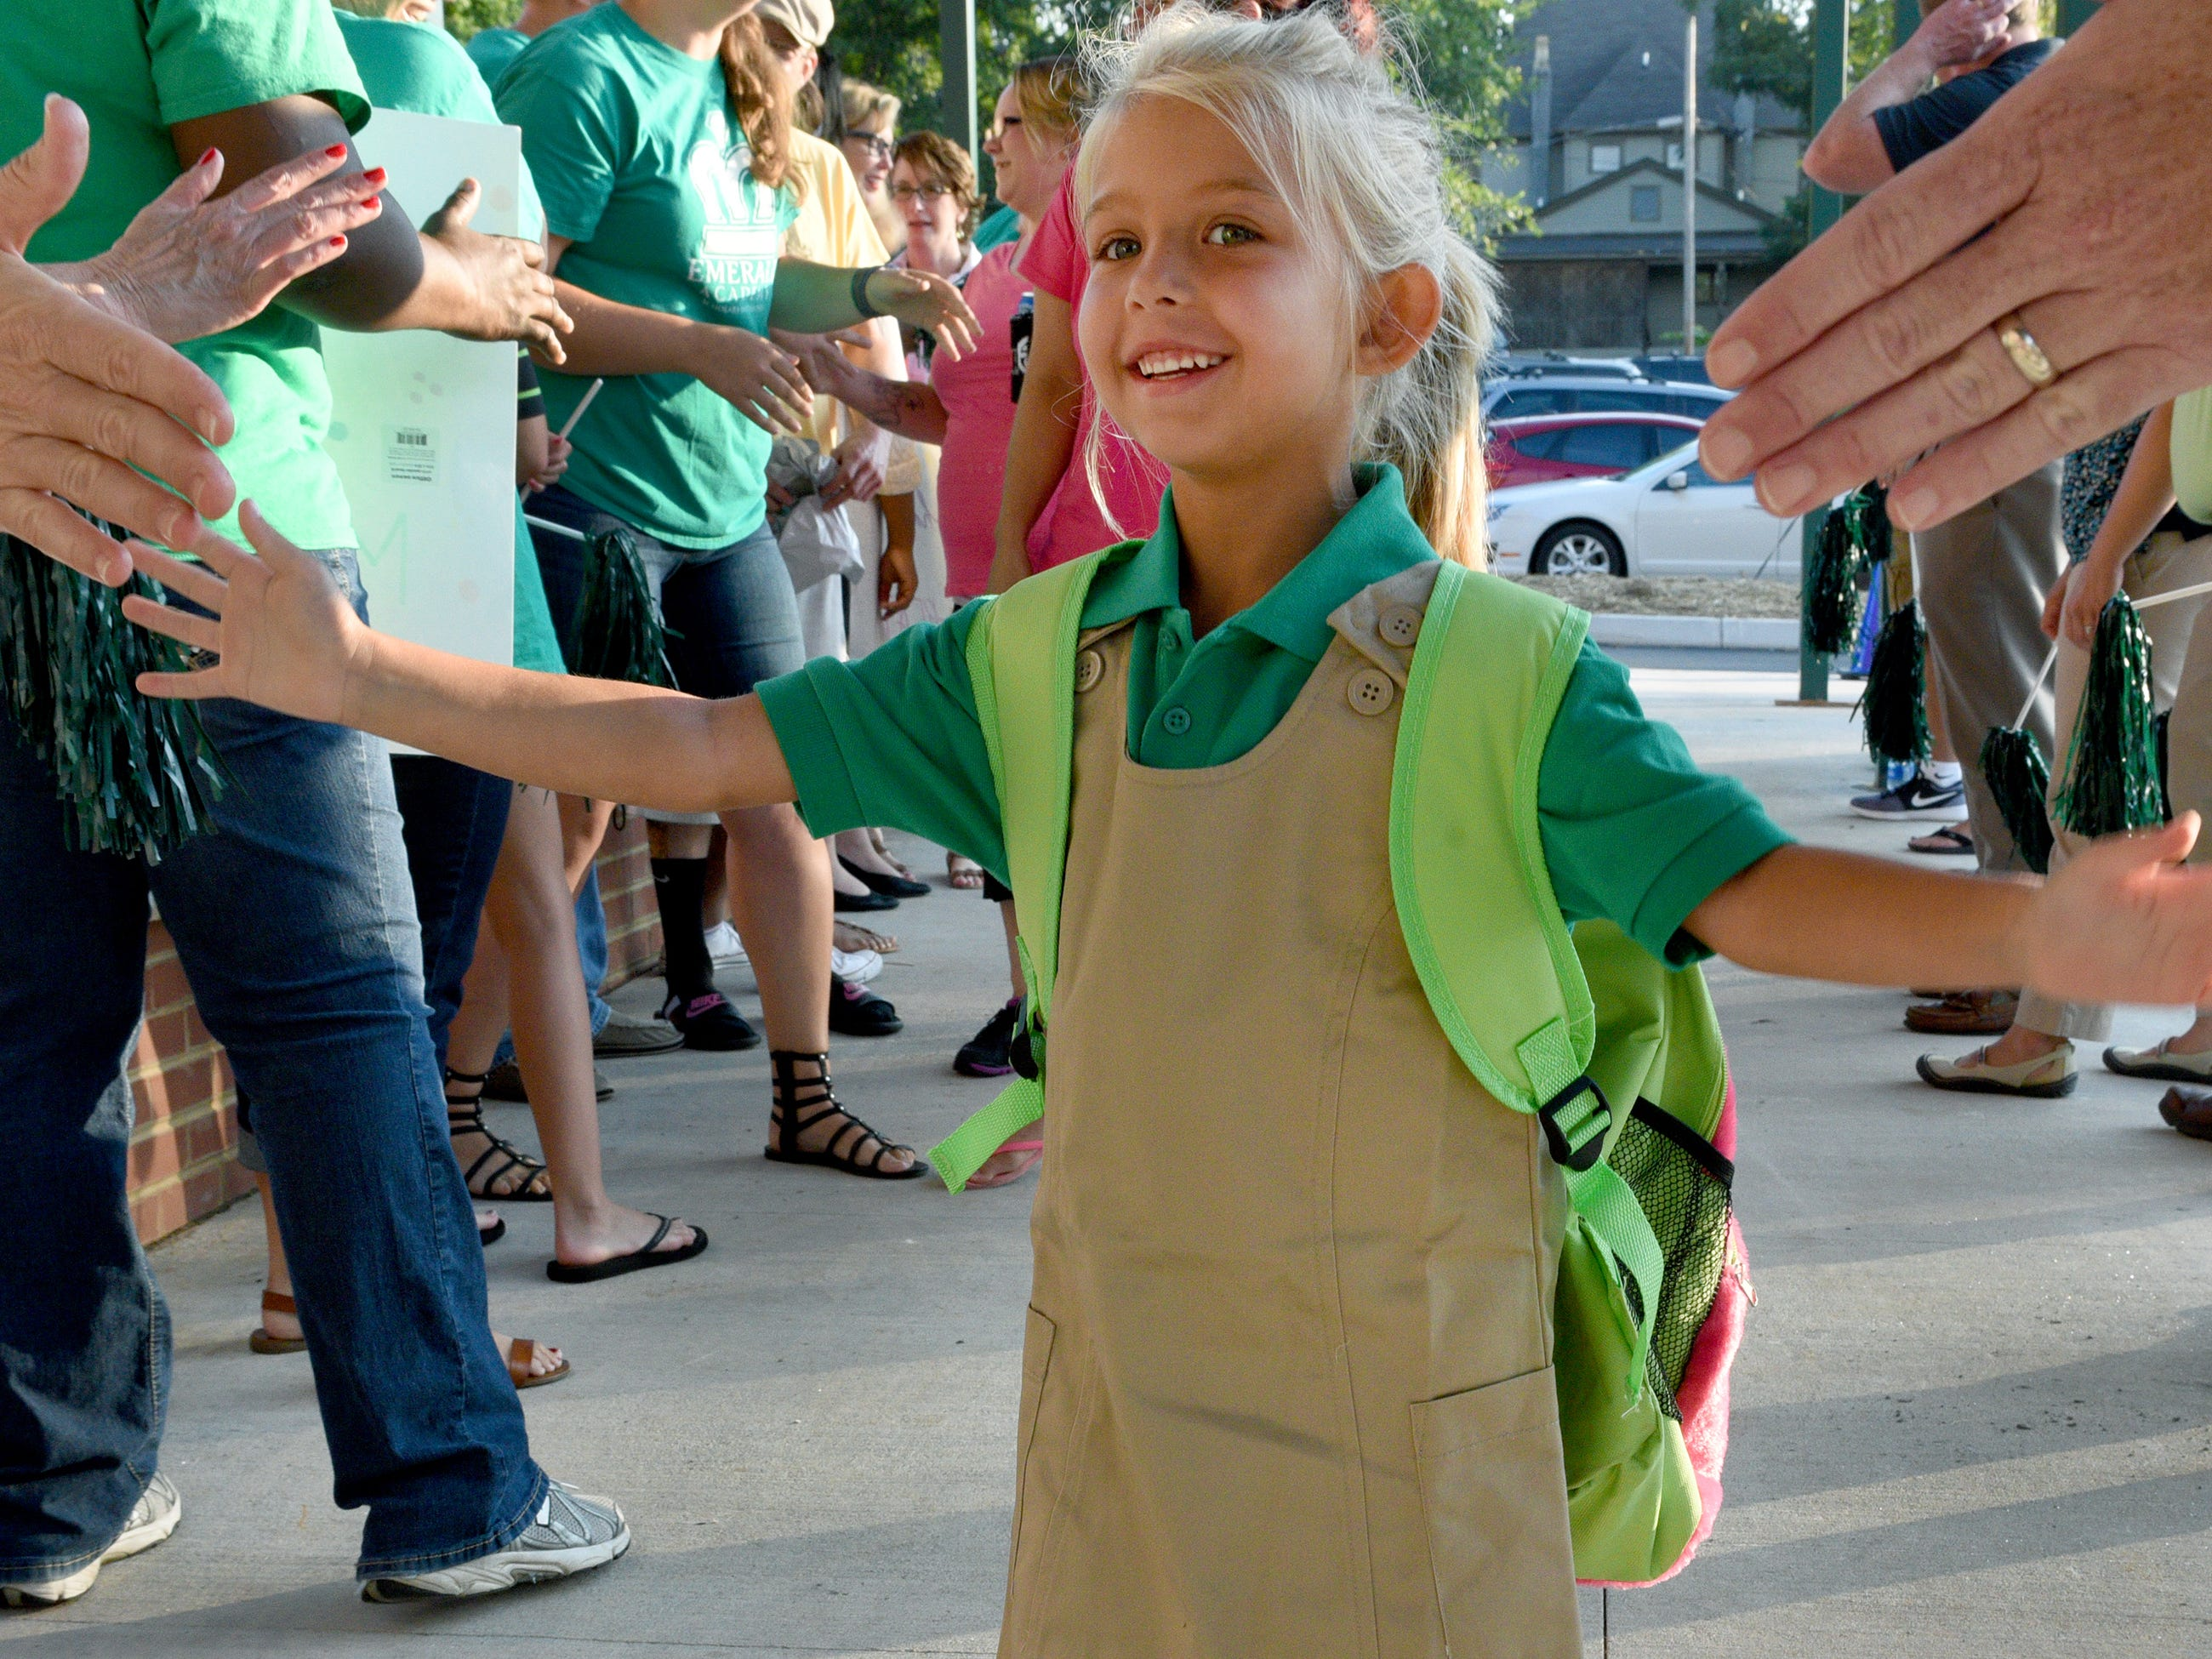 Maddison Clarkson, 6, walks the gauntlet of teachers and staff as she arrives for the first day of classes at Emerald Academy, Knoxville's first charter school Monday, Jul. 27, 2015. Emerald Academy is housed in the former Moses Center on Carrick Ave in Lonsdale.